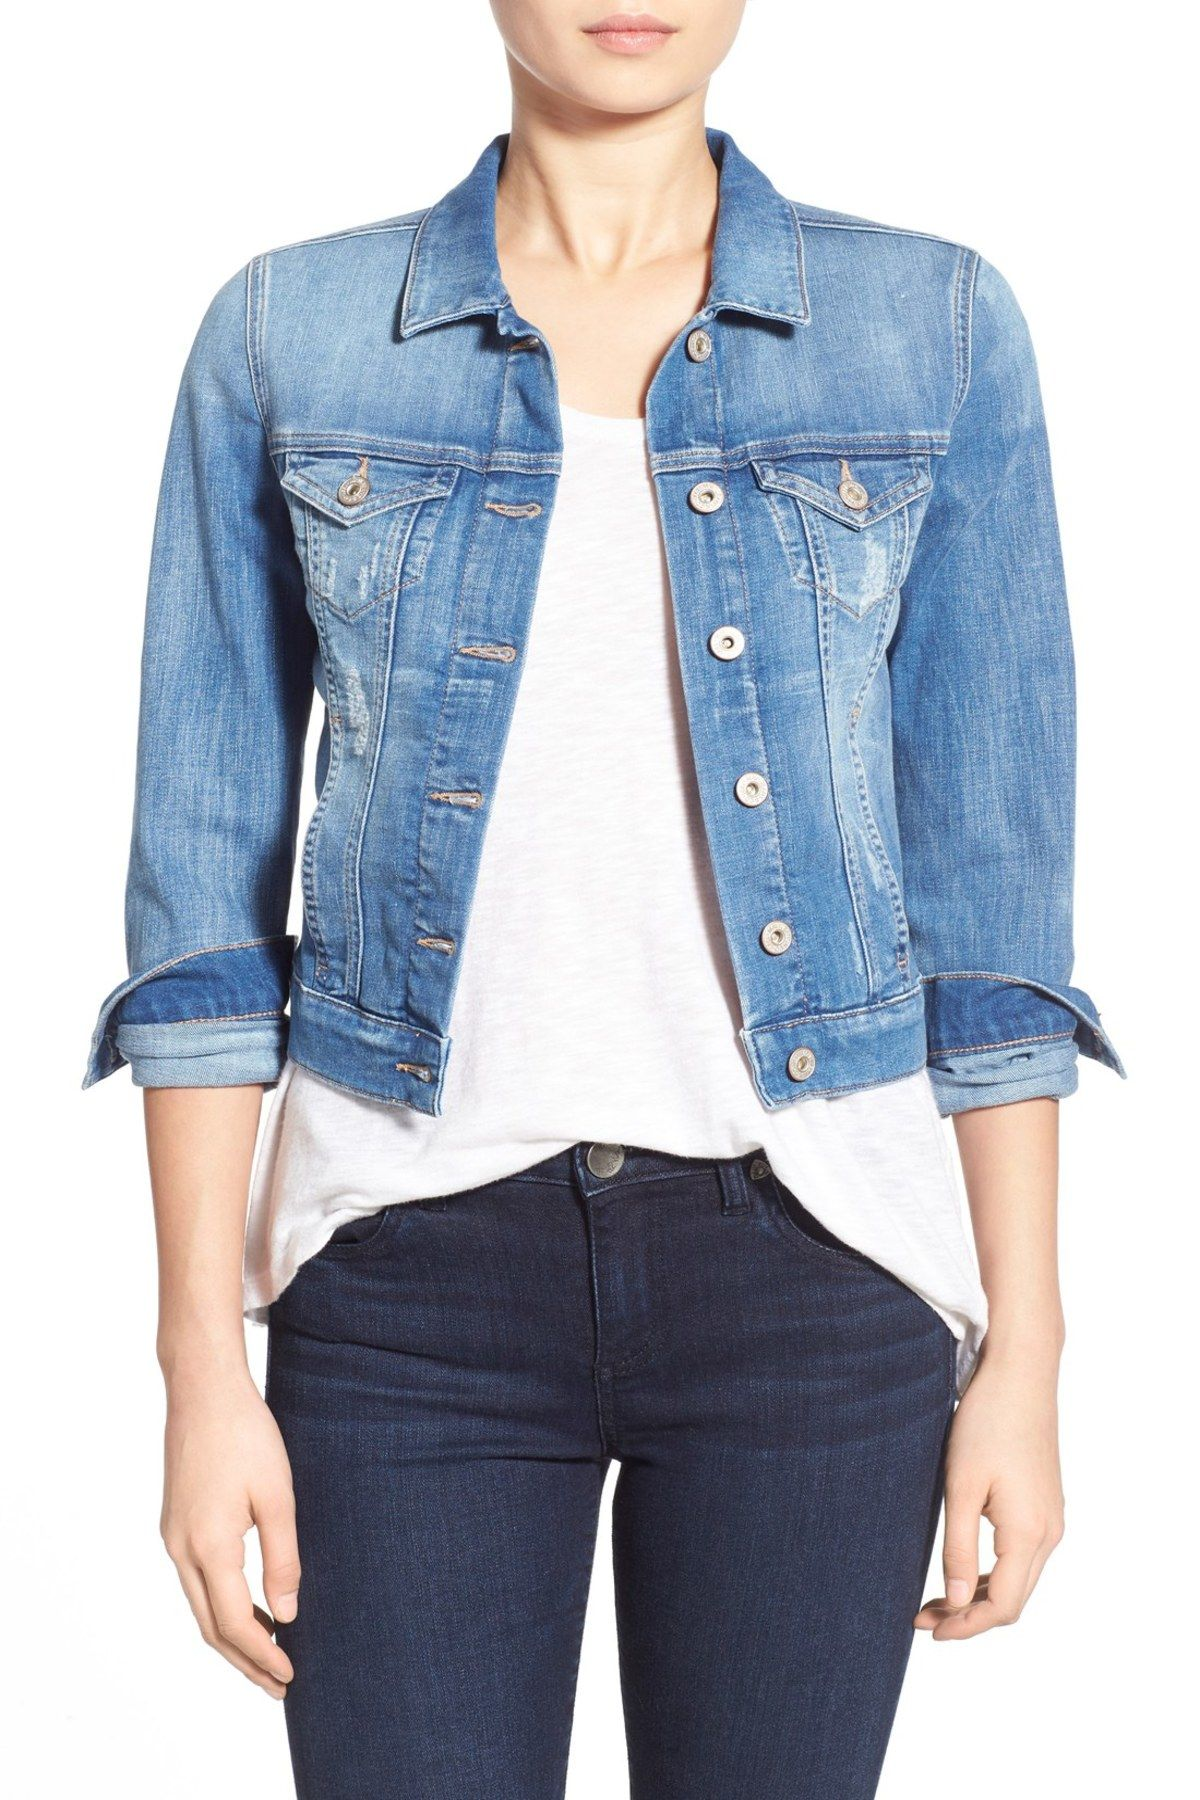 b865025b670 Mavi Samantha Denim Jacket | Styles Fashion Casual